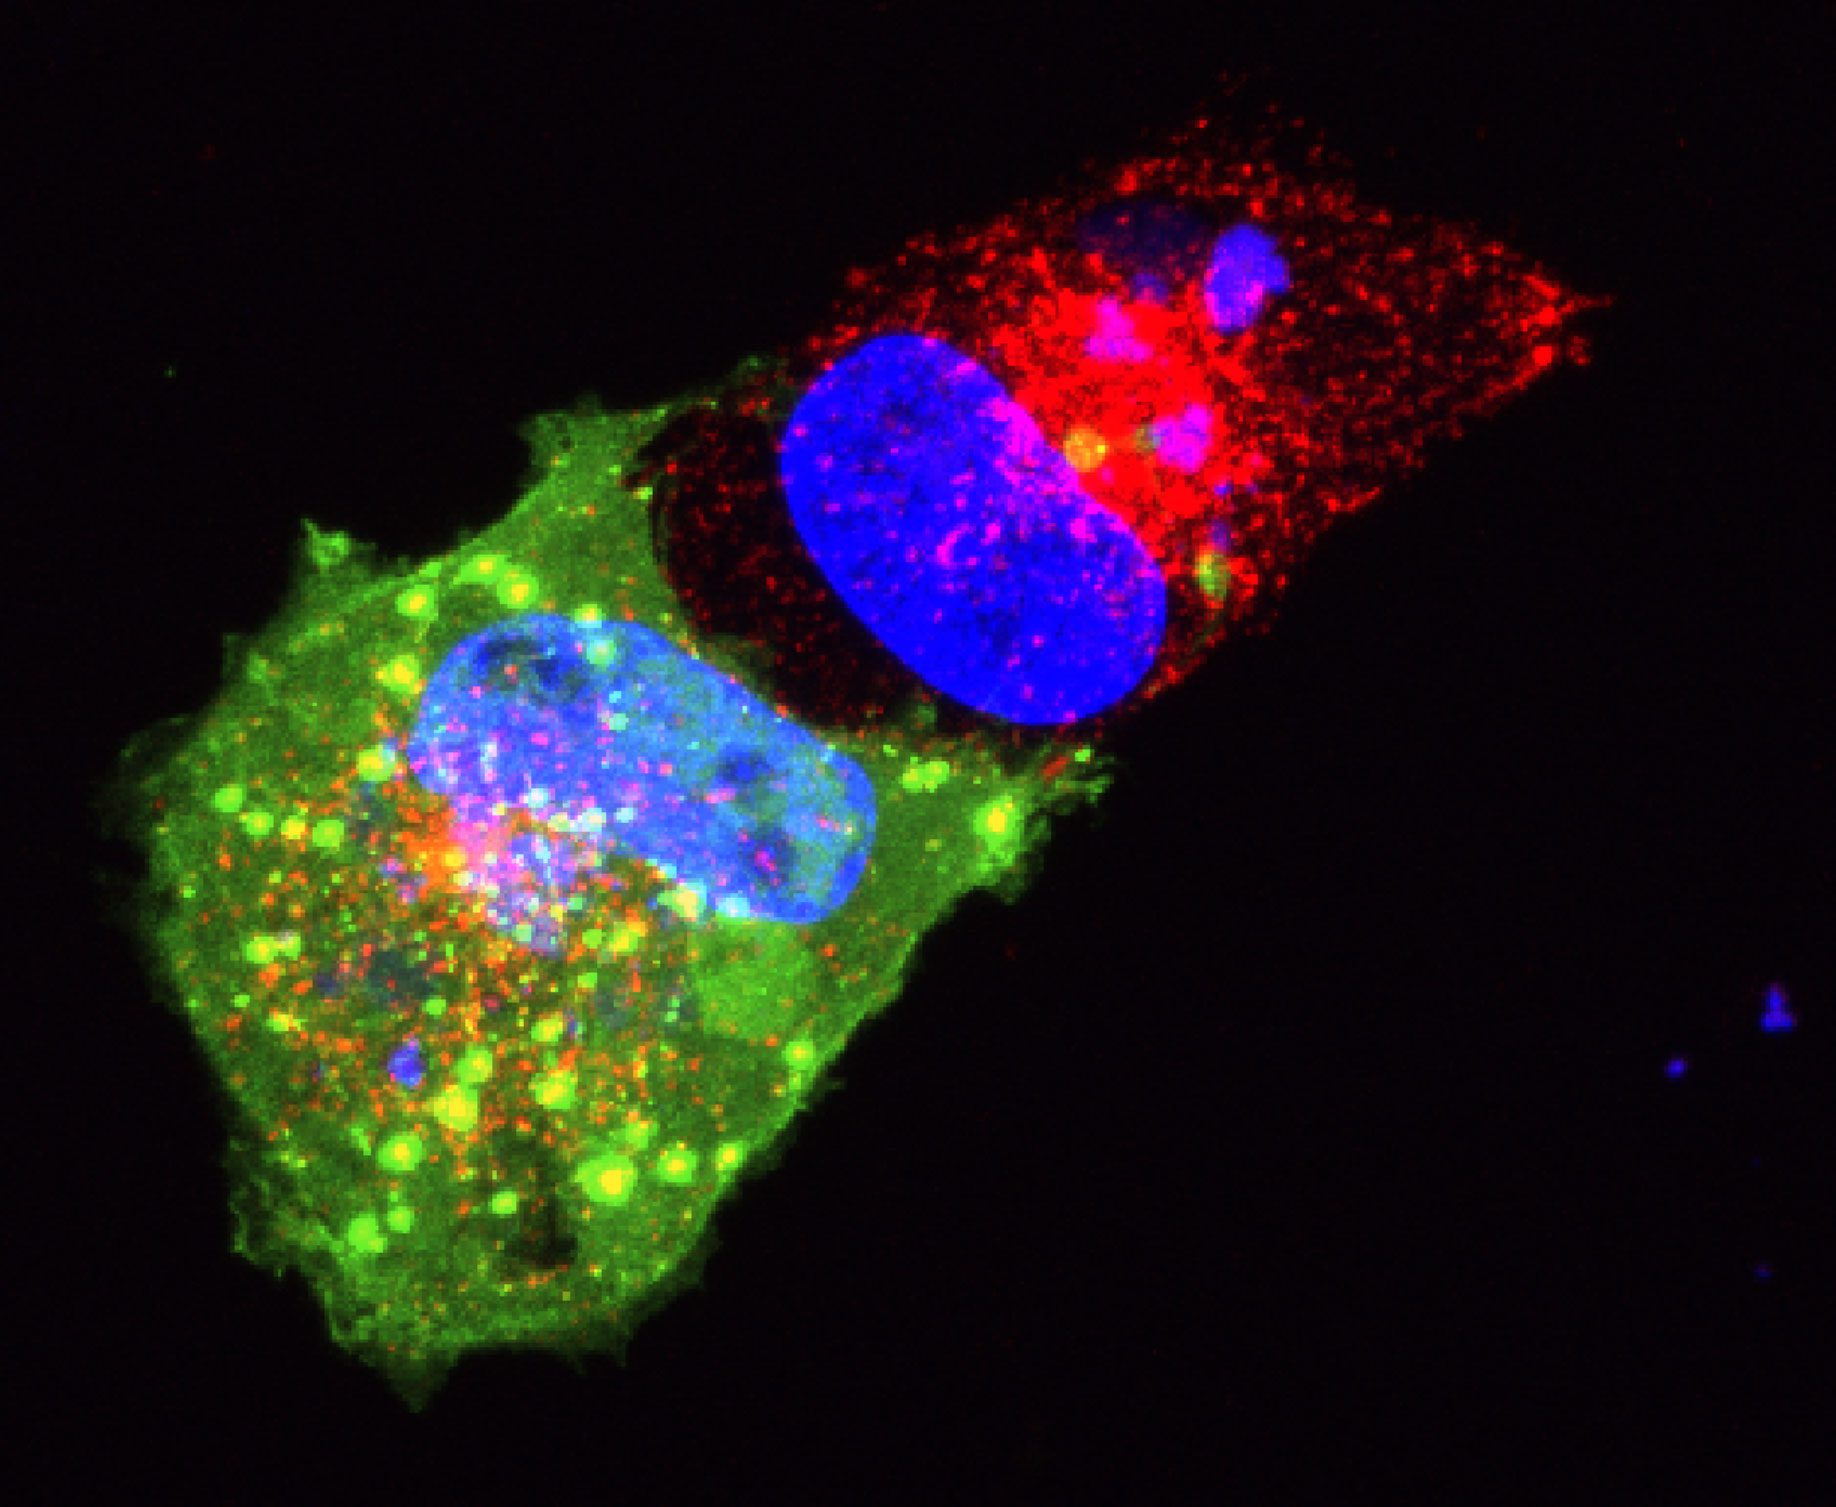 SVG-A glial cells transiently transfected with dominant negative dynamin (green) treated with transferrin-594 (red), and stained with DAPI (blue). 5 minutes post internalization. Courtesy of Colleen Mayberry and Melissa Maginnis, University of Maine.